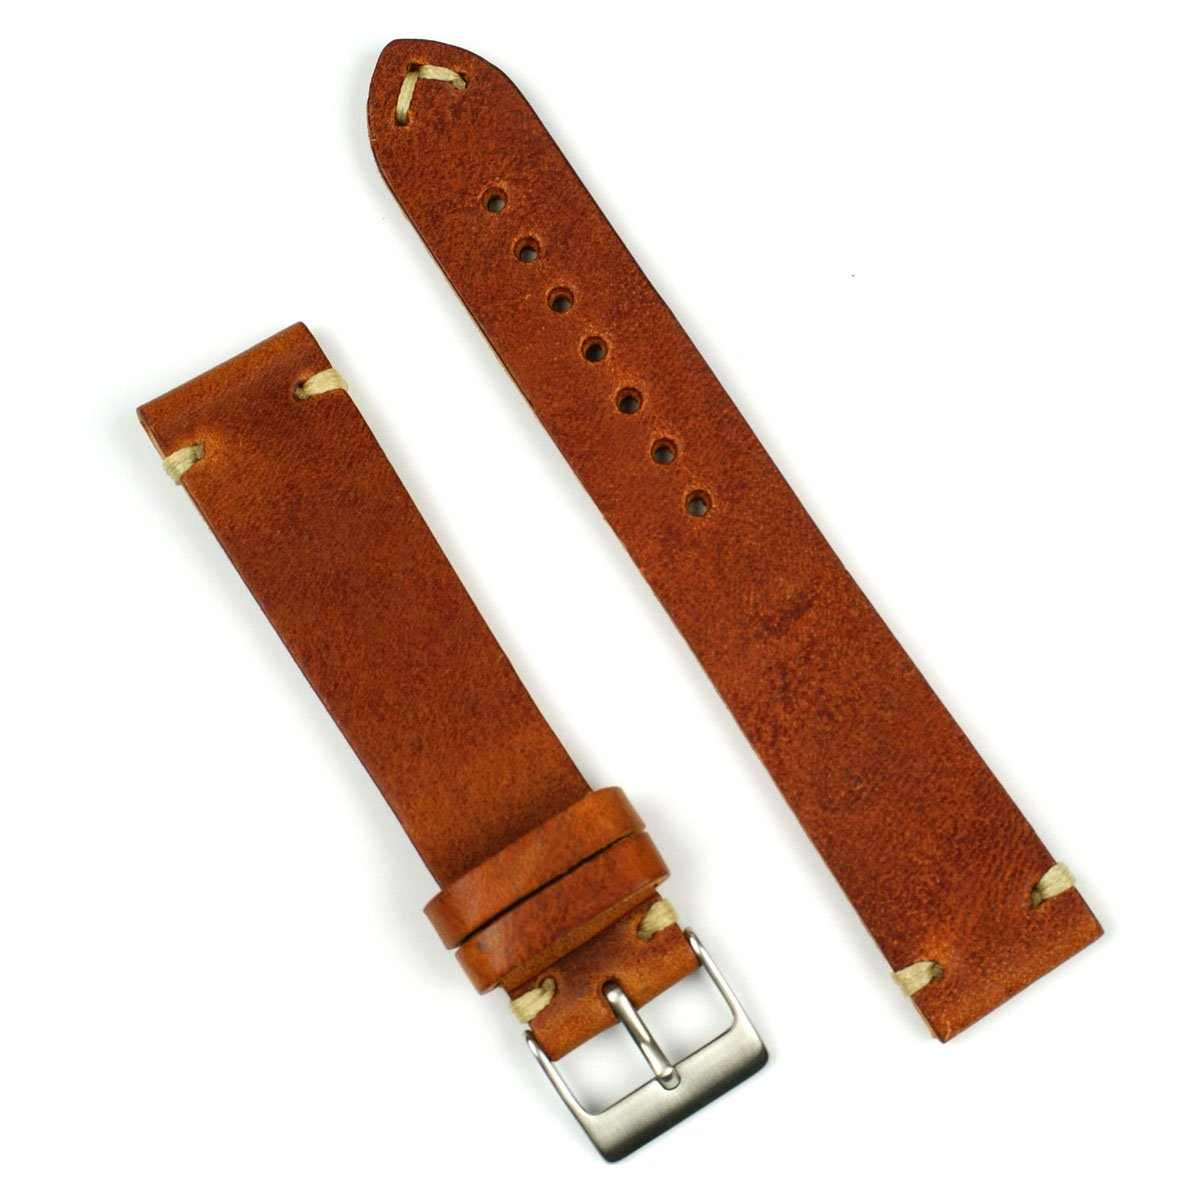 B & R Bands 18mm Cognac Classic Vintage Leather Watch Band Strap - Small Length